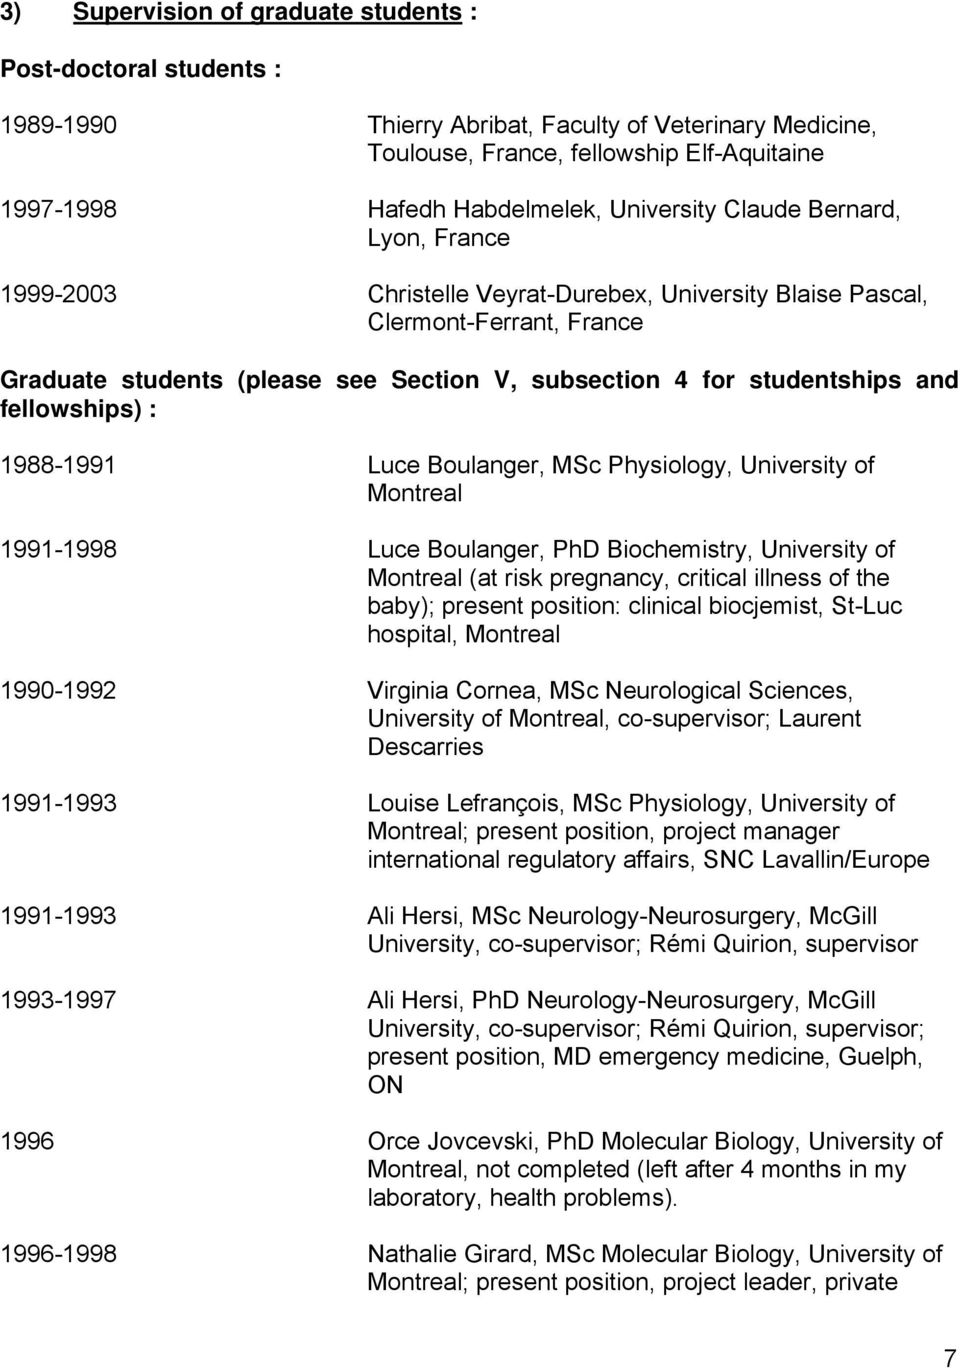 and fellowships) : 1988-1991 Luce Boulanger, MSc Physiology, University of Montreal 1991-1998 Luce Boulanger, PhD Biochemistry, University of Montreal (at risk pregnancy, critical illness of the